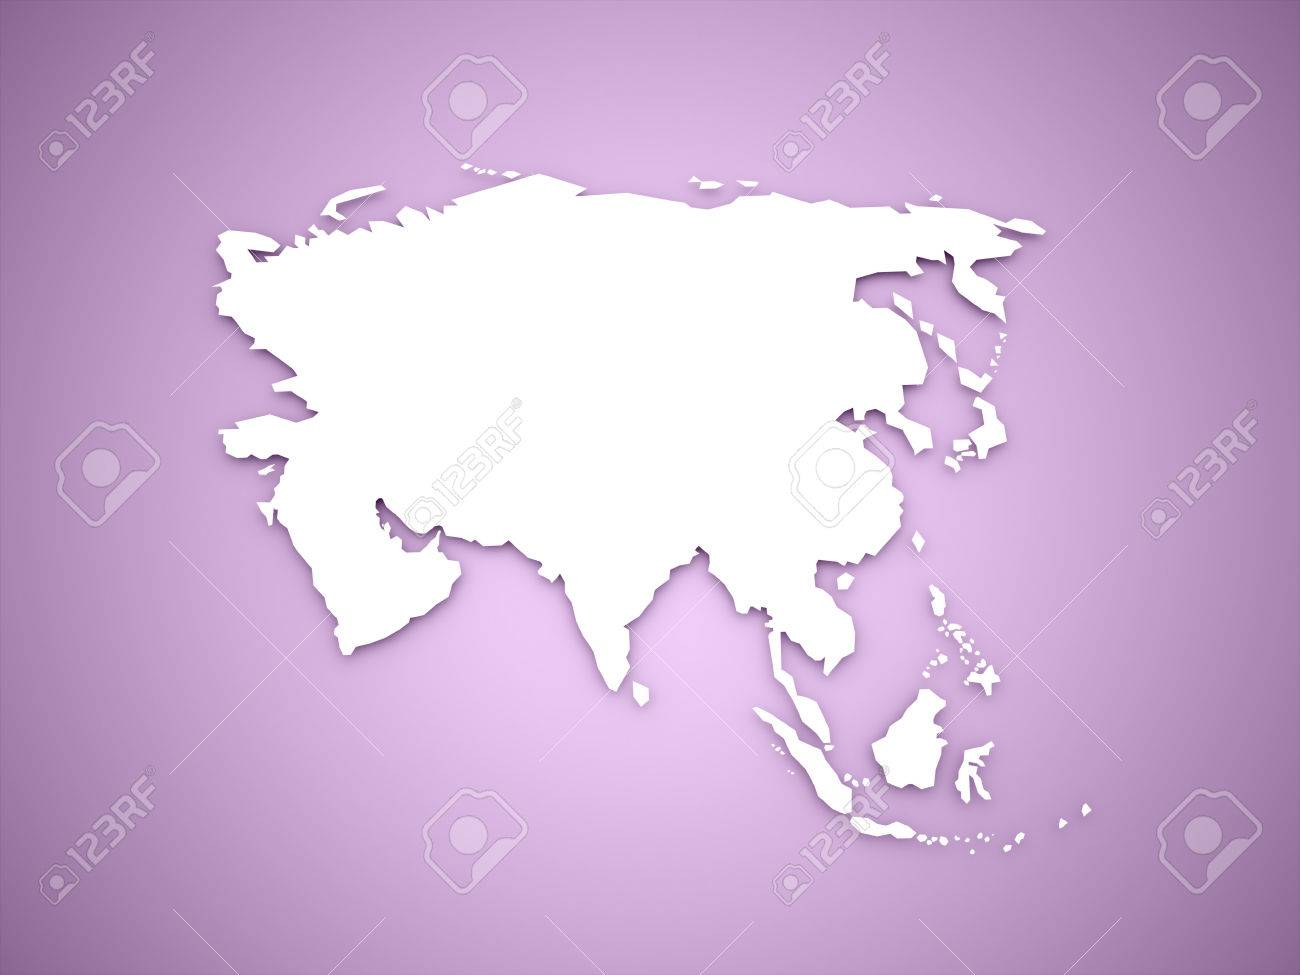 Asia Map Continent Concept On Purple Background Stock Photo, Picture ...